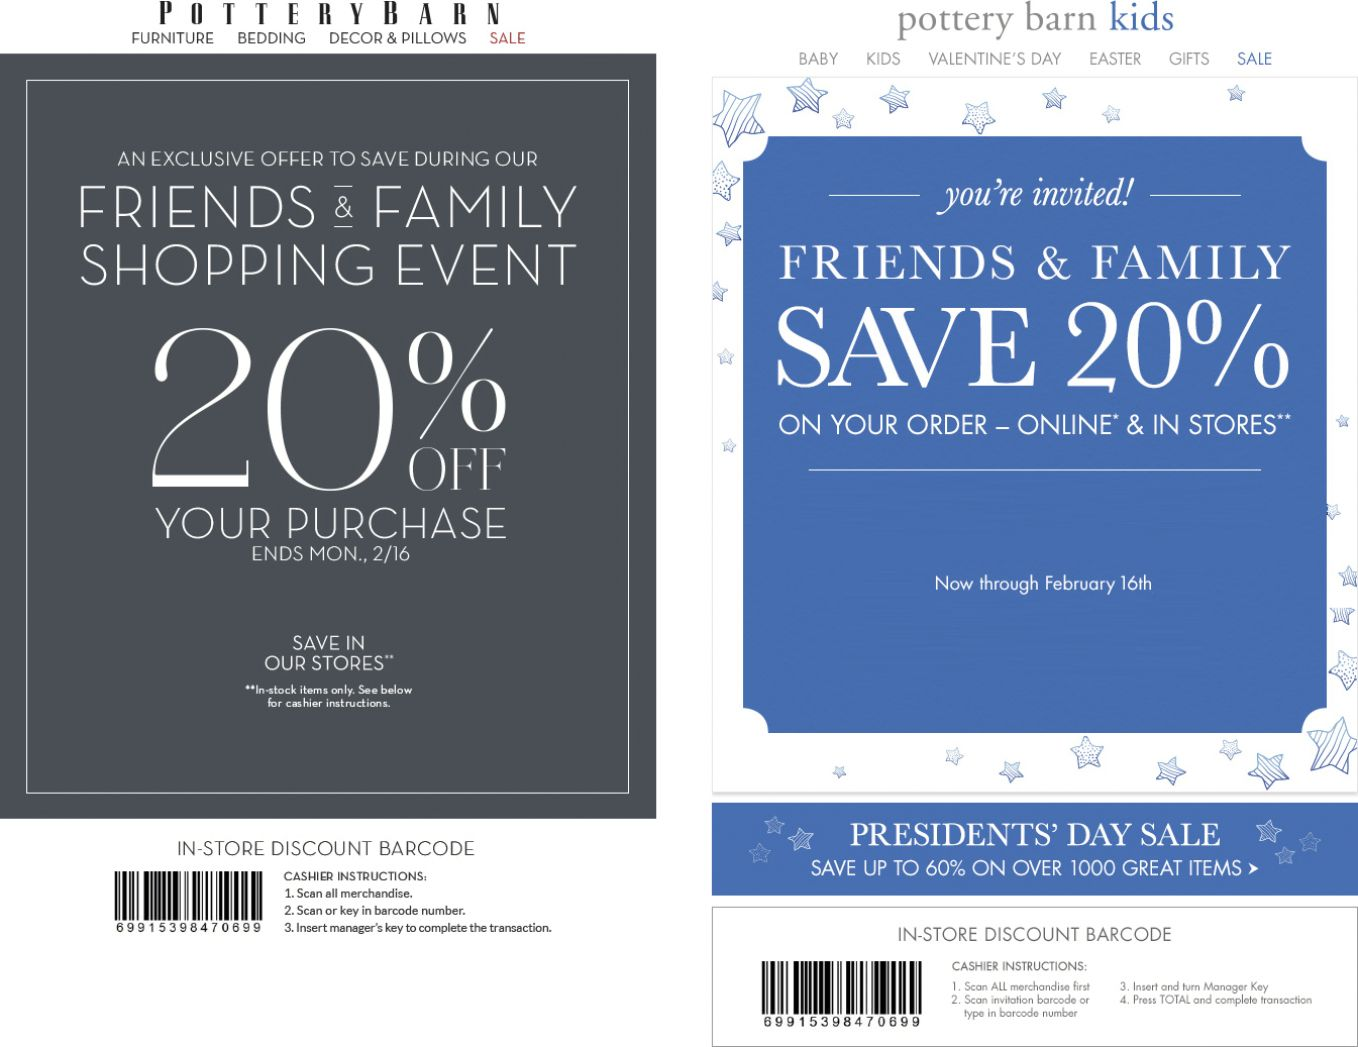 Pottery Barn Coupon Code http://wuuzzz.com/pottery-barn-coupon-code ...